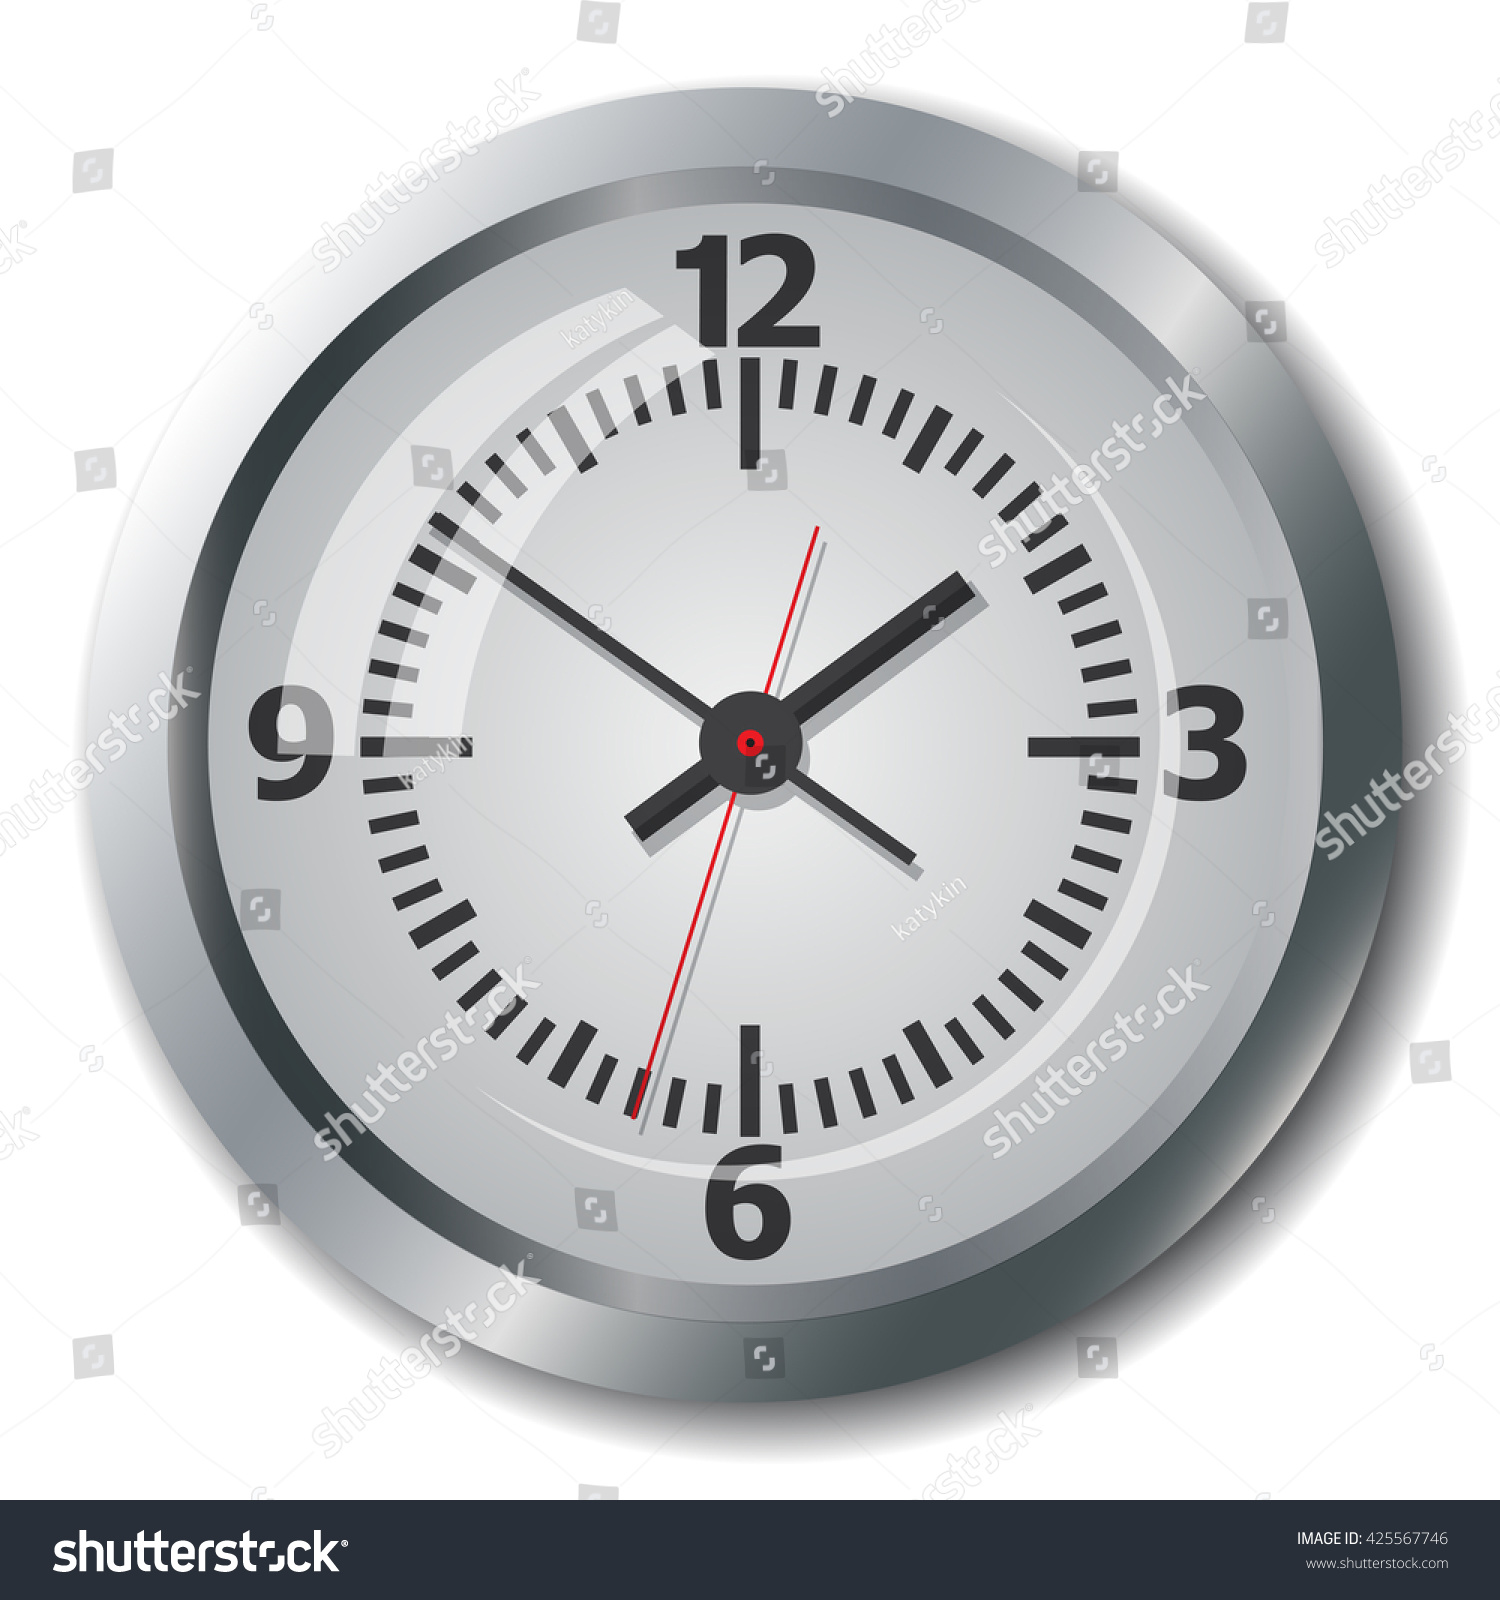 Clock time image clock face device stock vector 425567746 clock time image of clock face the device displays the hours minutes amipublicfo Image collections